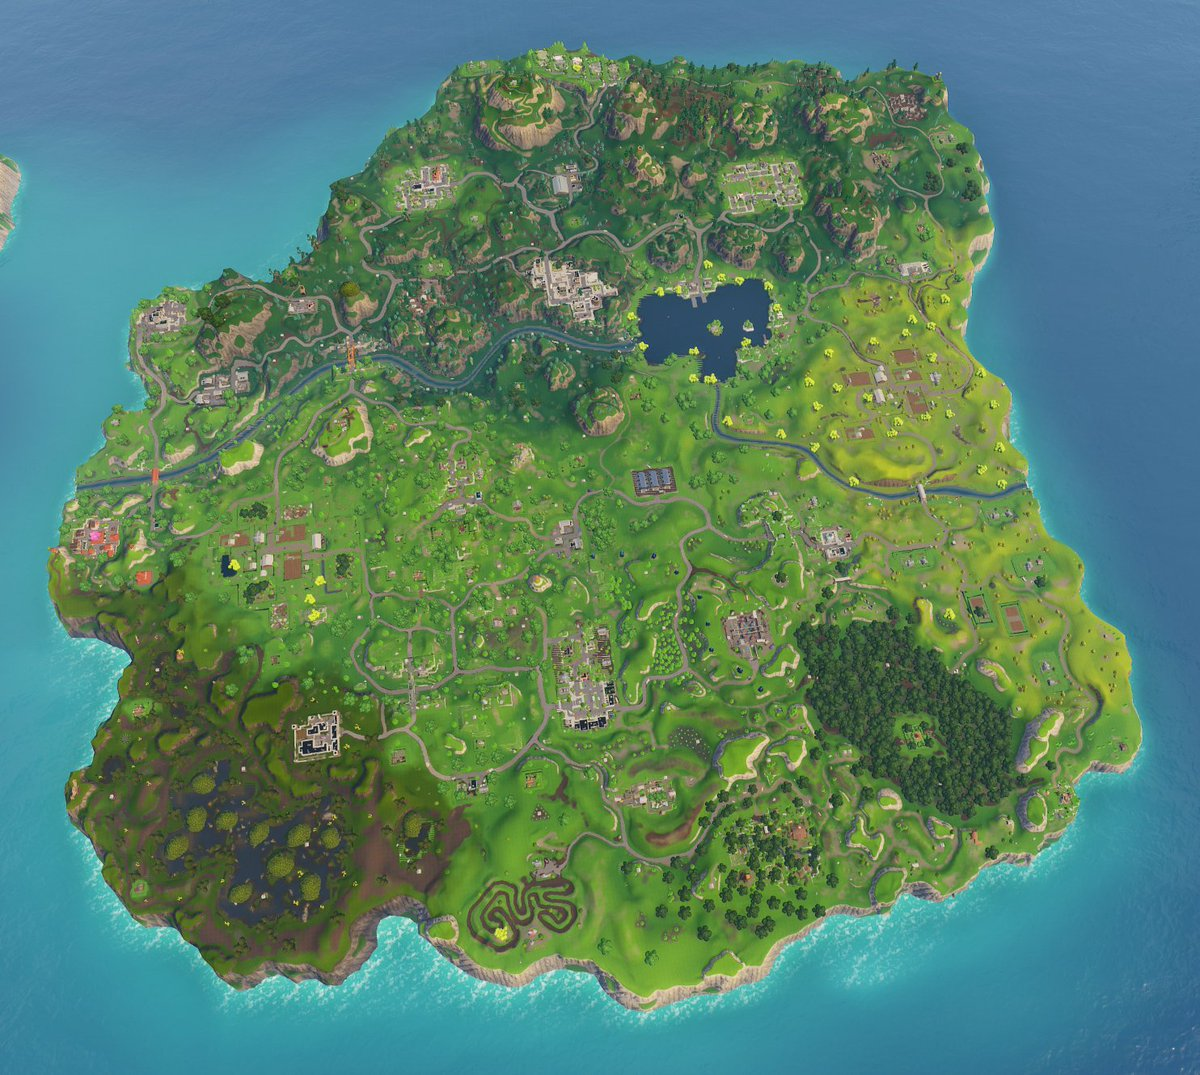 Not Sure Where To Drop? Let Fate Decide! : FortNiteBR